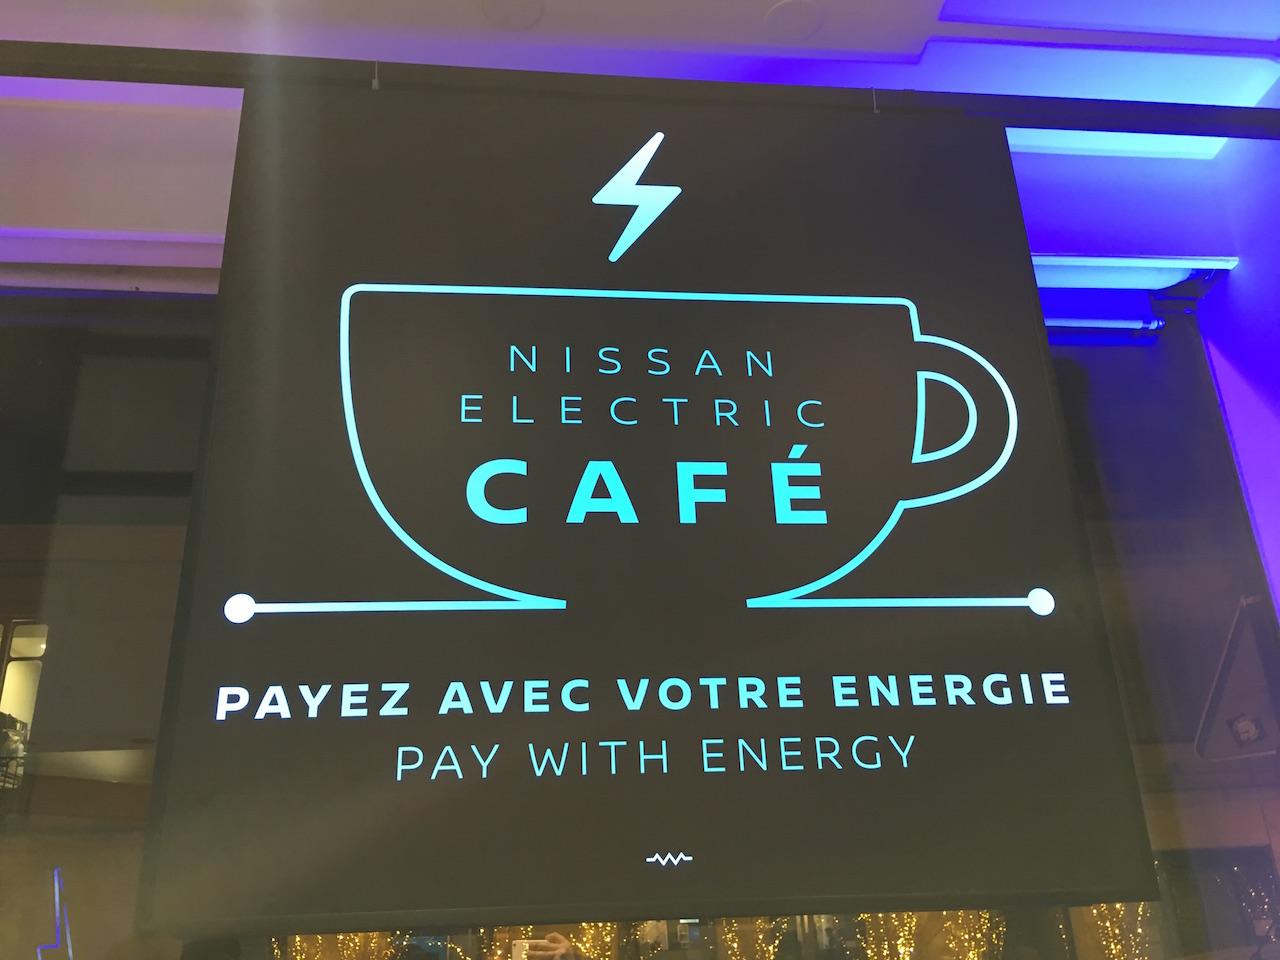 nissan-electric-cafe-9